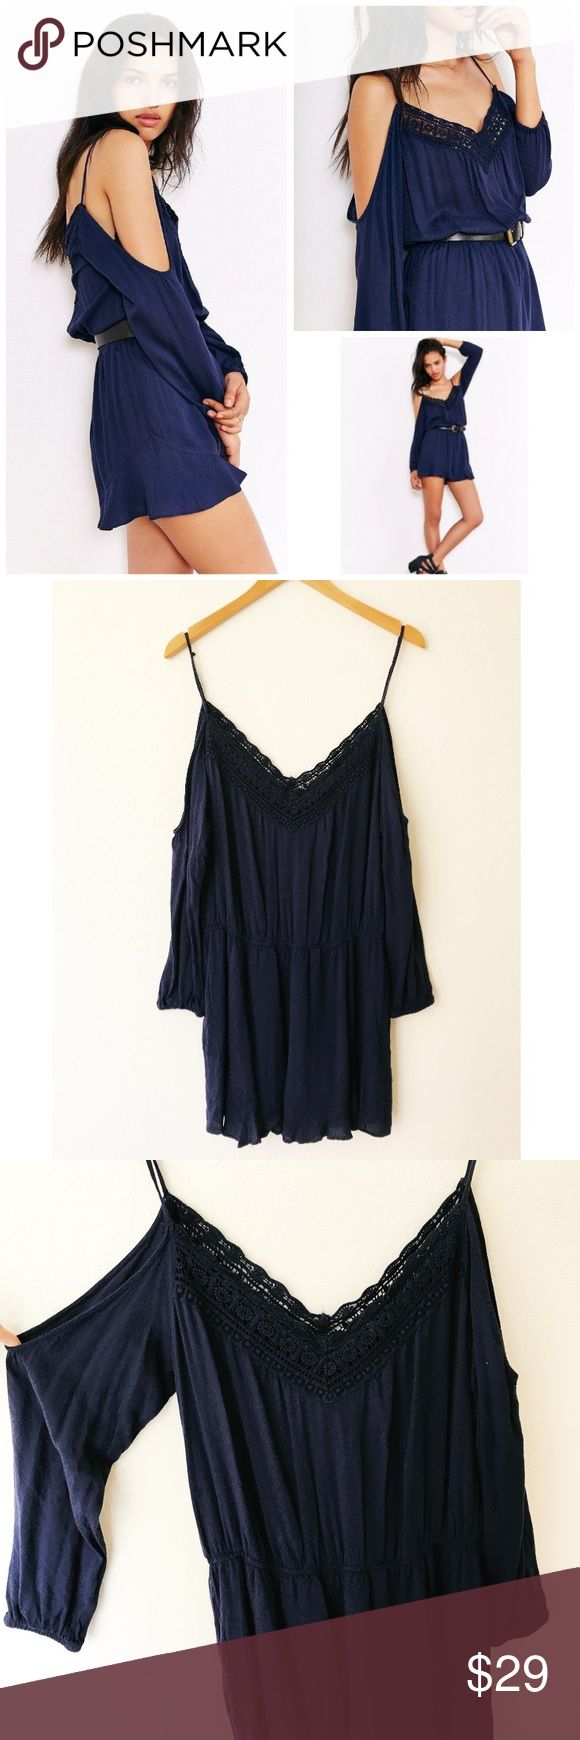 UO Ecote Navy Blue Open Shoulder Romper Very good preowned condition. Navy blue romper with police detail around the neckline, ruffled hem Shorts, open boulder Shoulder style with long sleeves. Elastic waist and fully lined. Urban Outfitters Pants Jumpsuits & Rompers